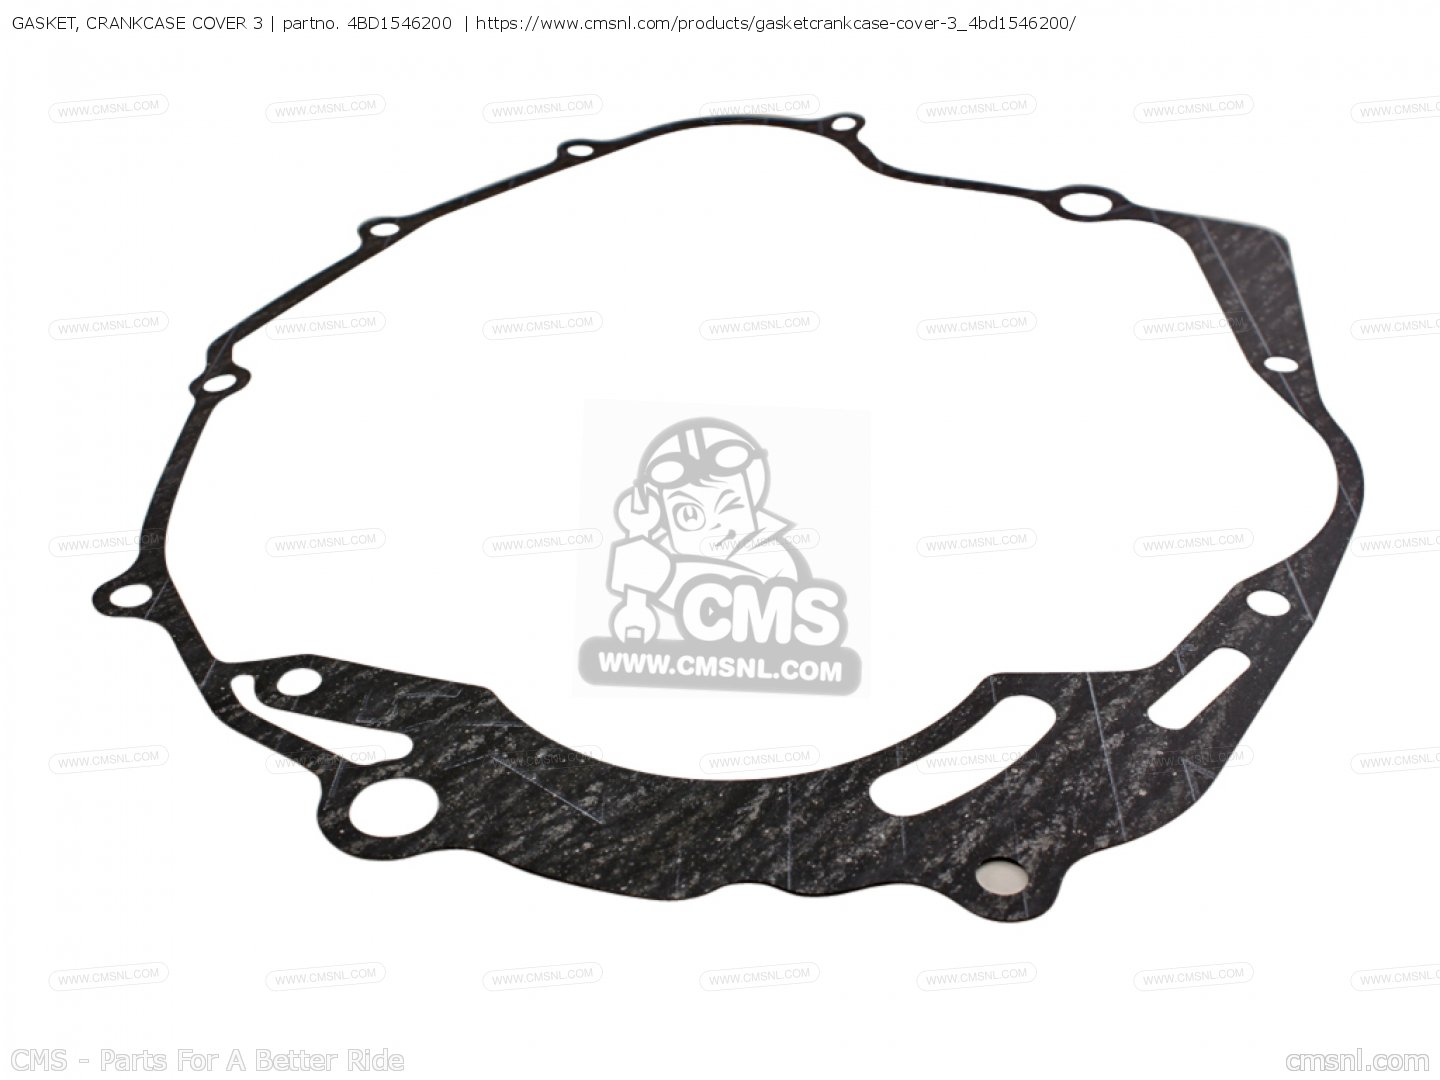 Gasket Crankcase Cover 3 For Yfm250w Moto 4